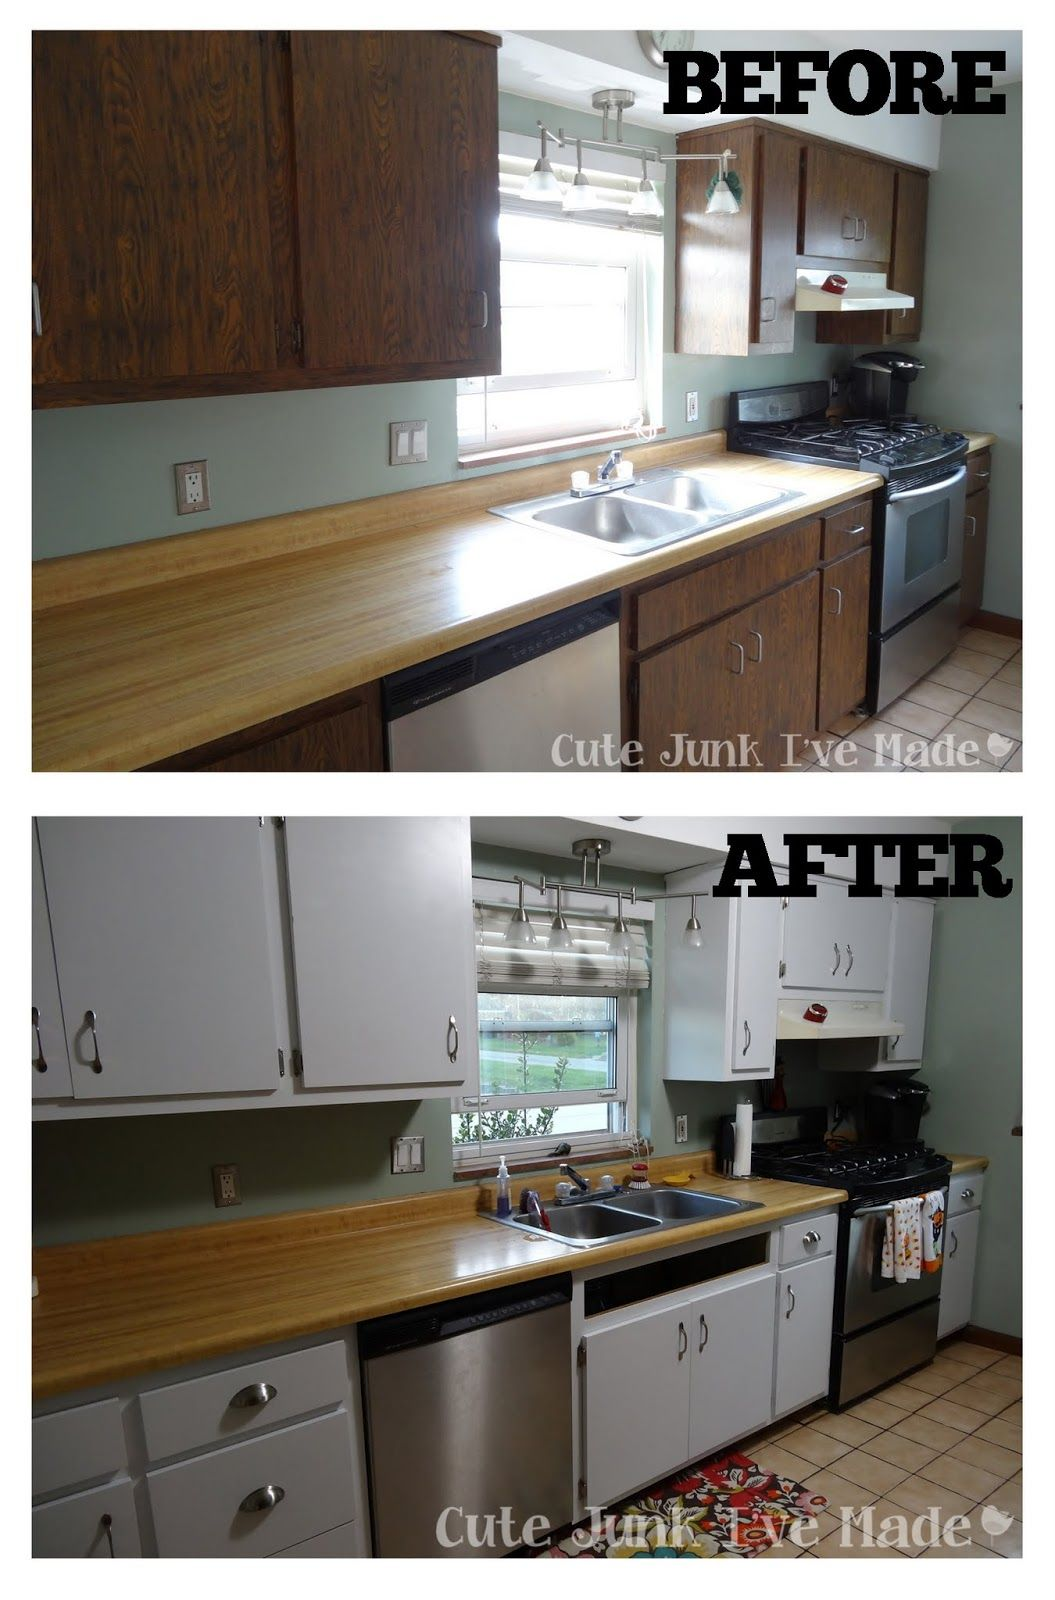 How To Paint Laminate Cabinets Before After Laminate Kitchen Cabinets Painting Laminate Kitchen Cabinets Laminate Cabinets